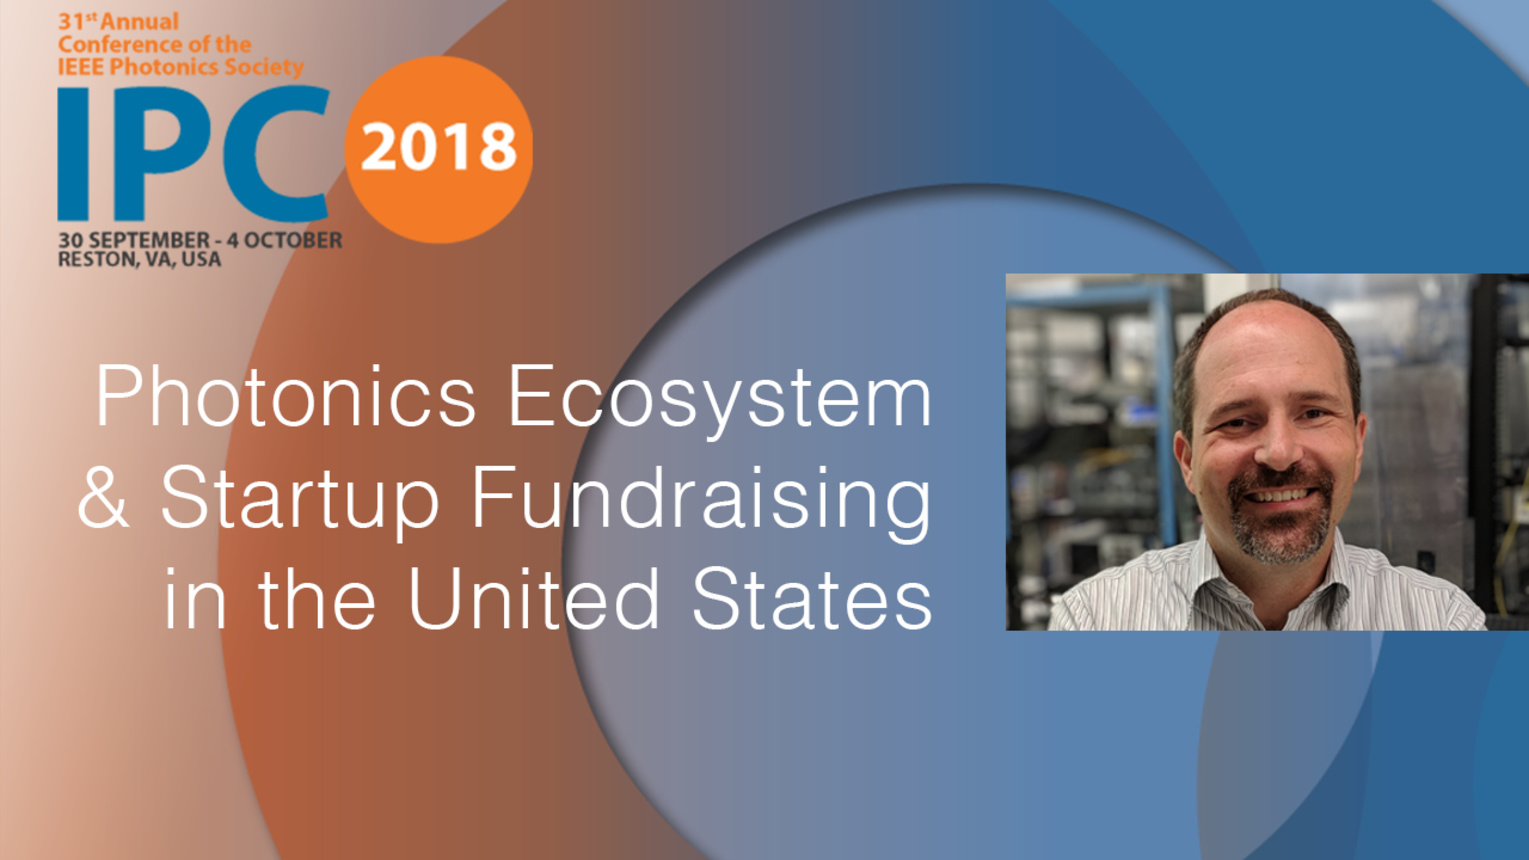 Photonics Ecosystem and Startup Fundraising: United States - Milan Mashanovitch - IPC 2018